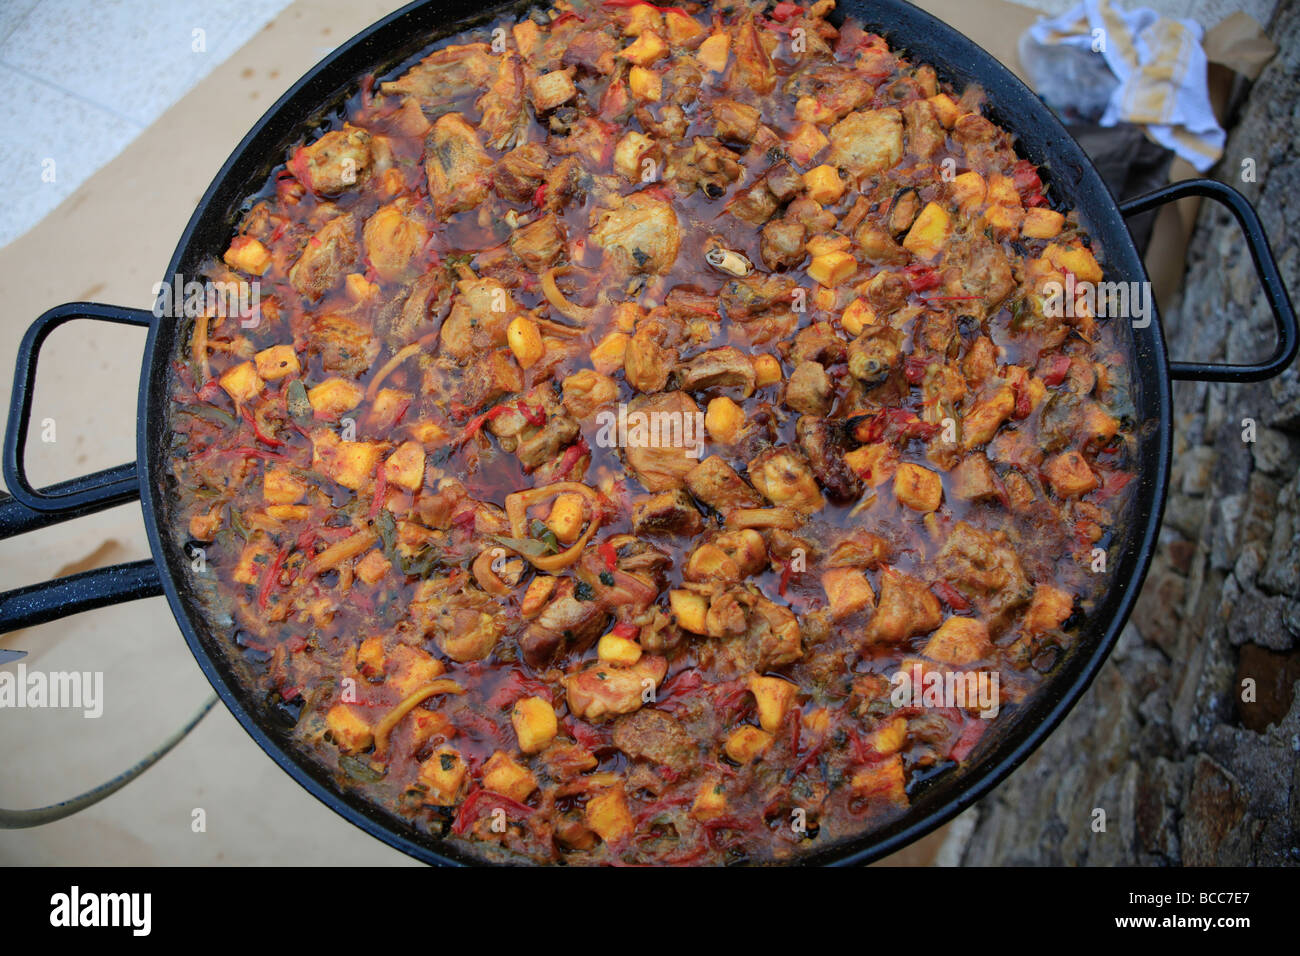 Cooking Paella Spanish Paella probably Spains most colourful and famous gastronomic delight. Spanish food. - Stock Image